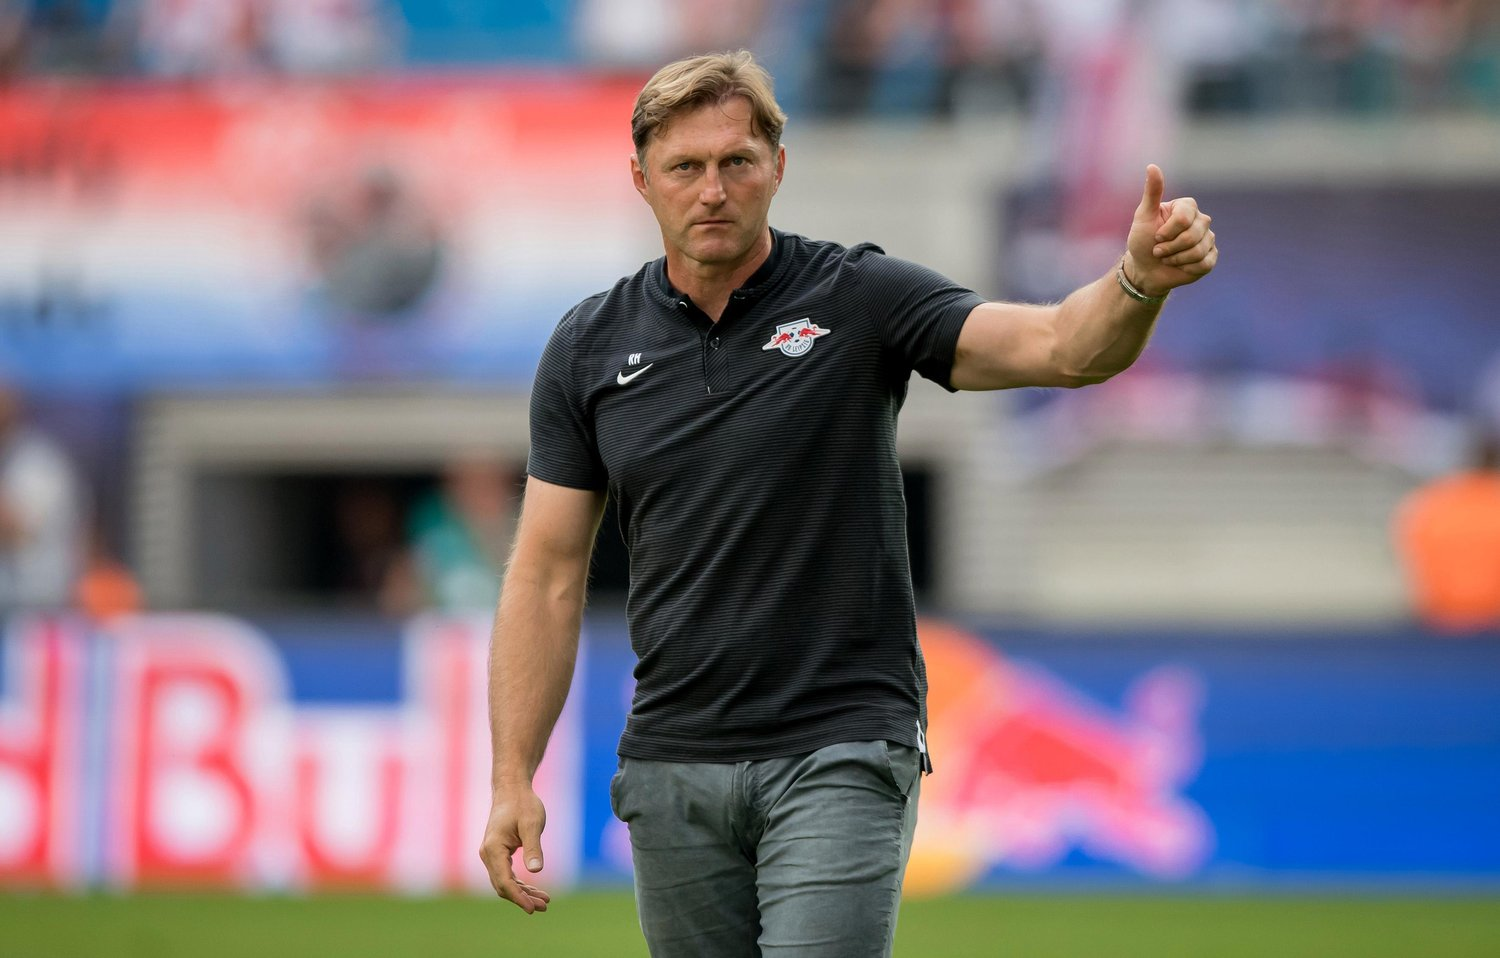 Ralph Hasenhüttl confirmed as new Southampton Manager